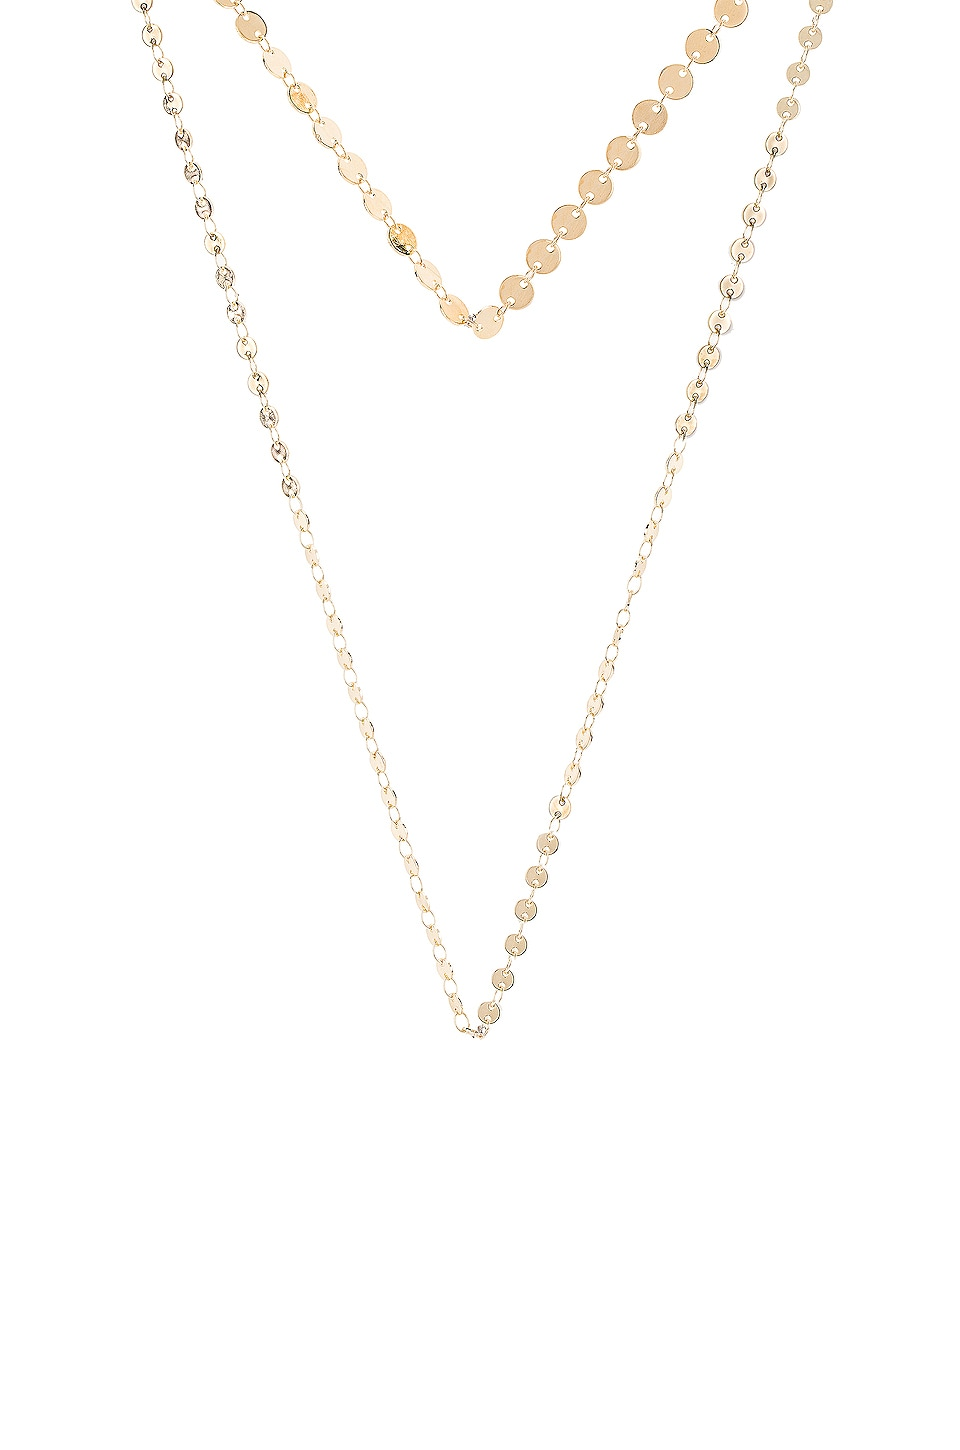 joolz by Martha Calvo Disco Necklace Set in Gold